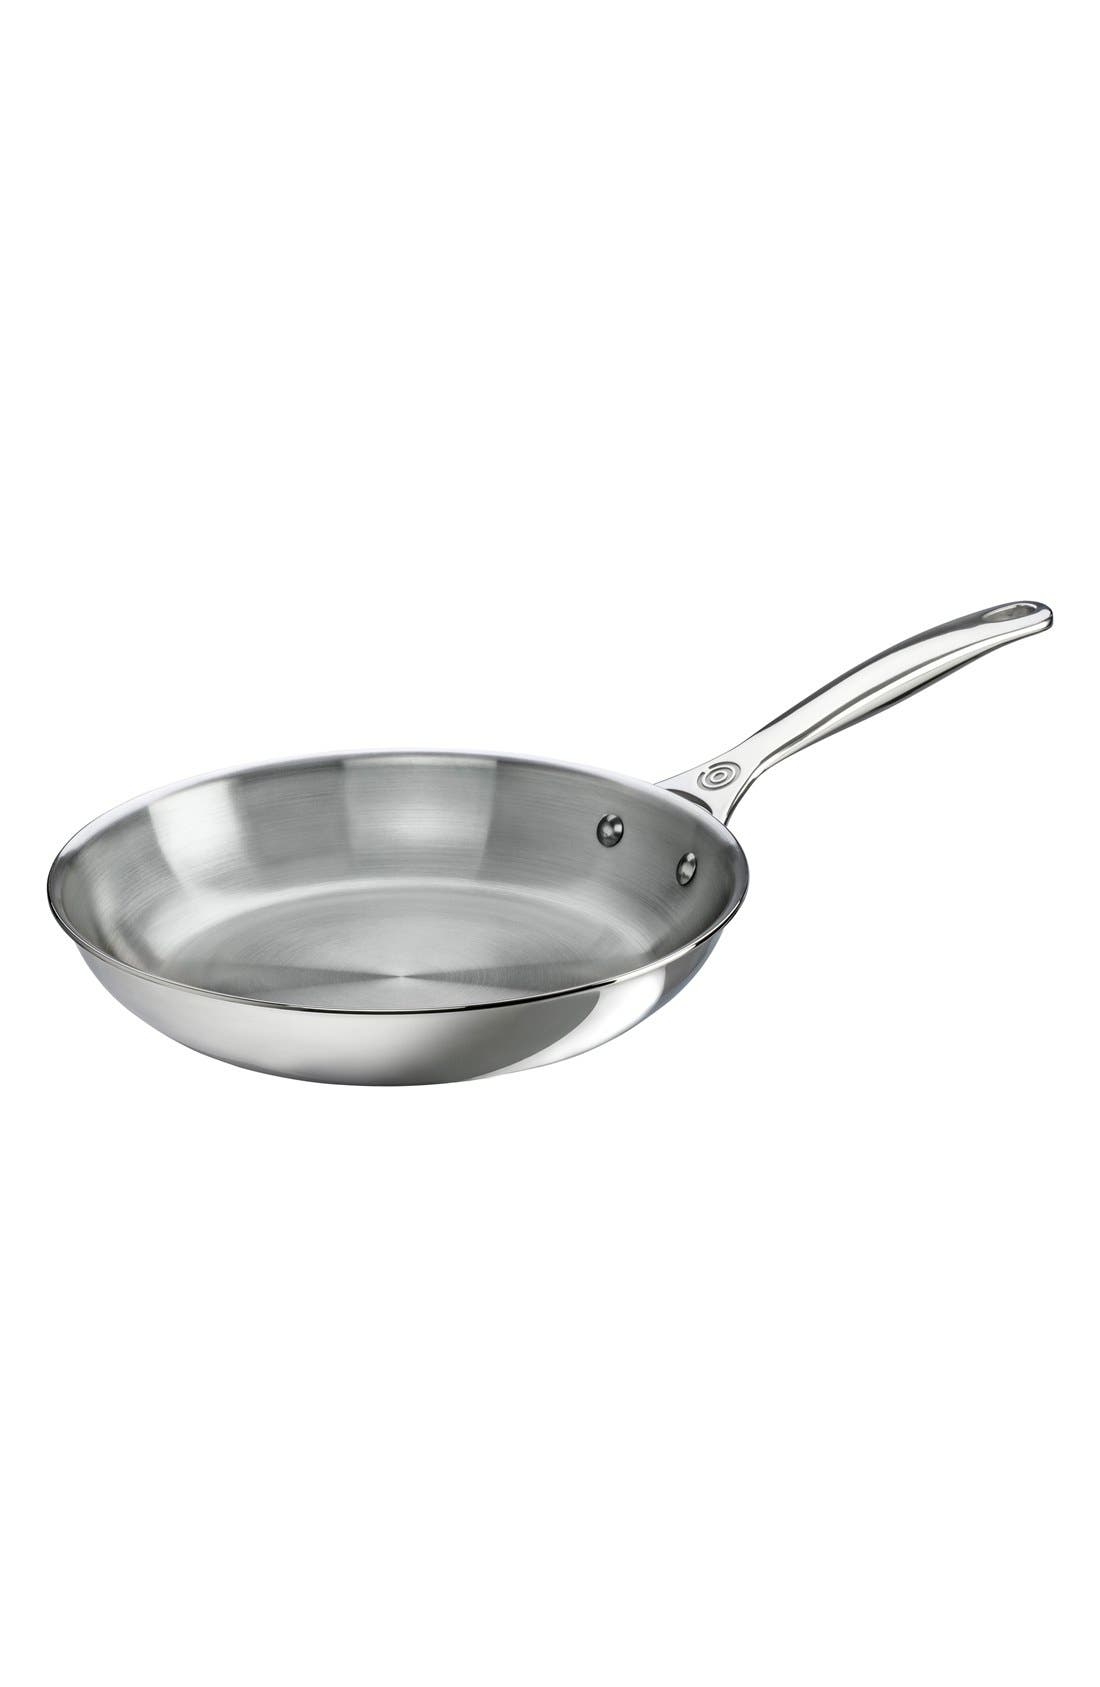 Le Creuset 10 Inch Stainless Steel Fry Pan